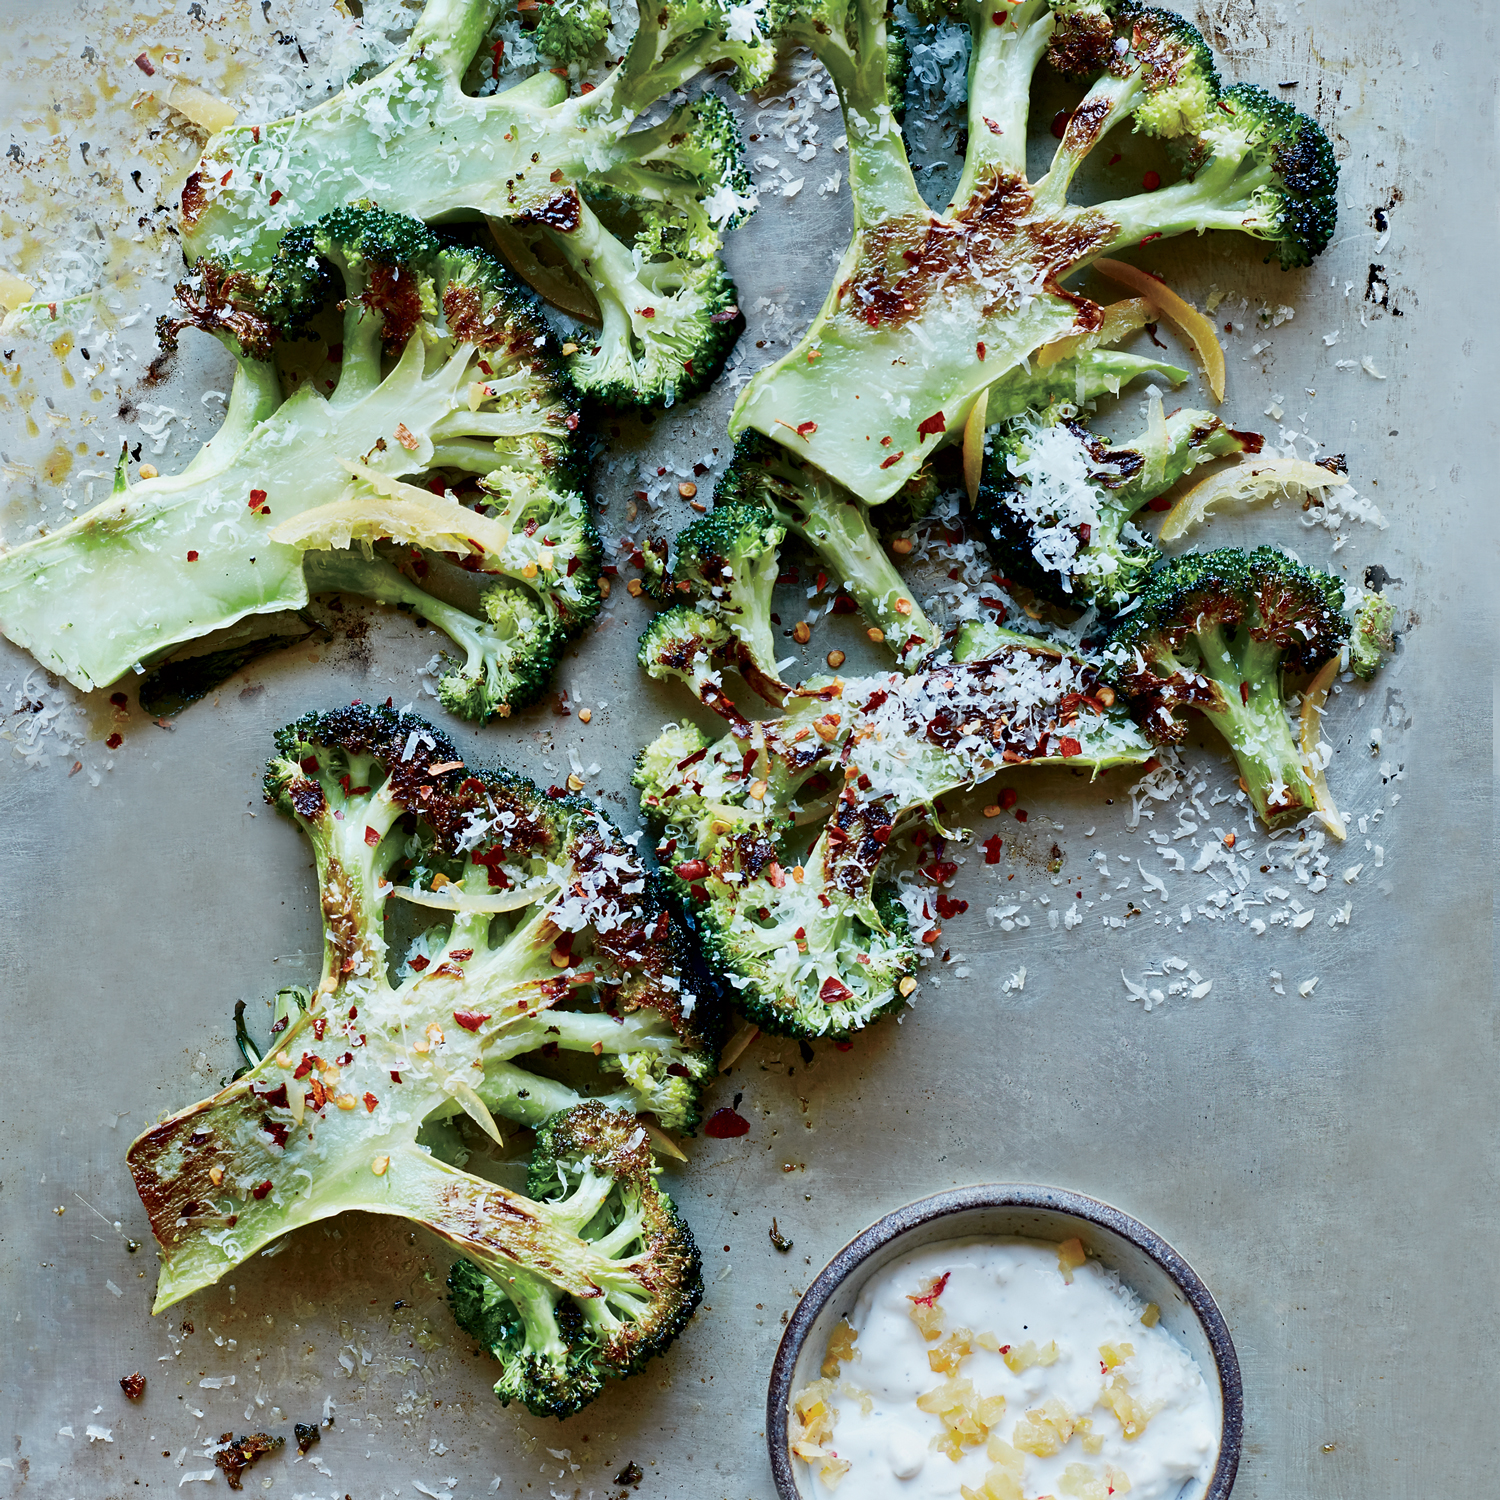 Broccoli with Preserved Lemon Yogurt